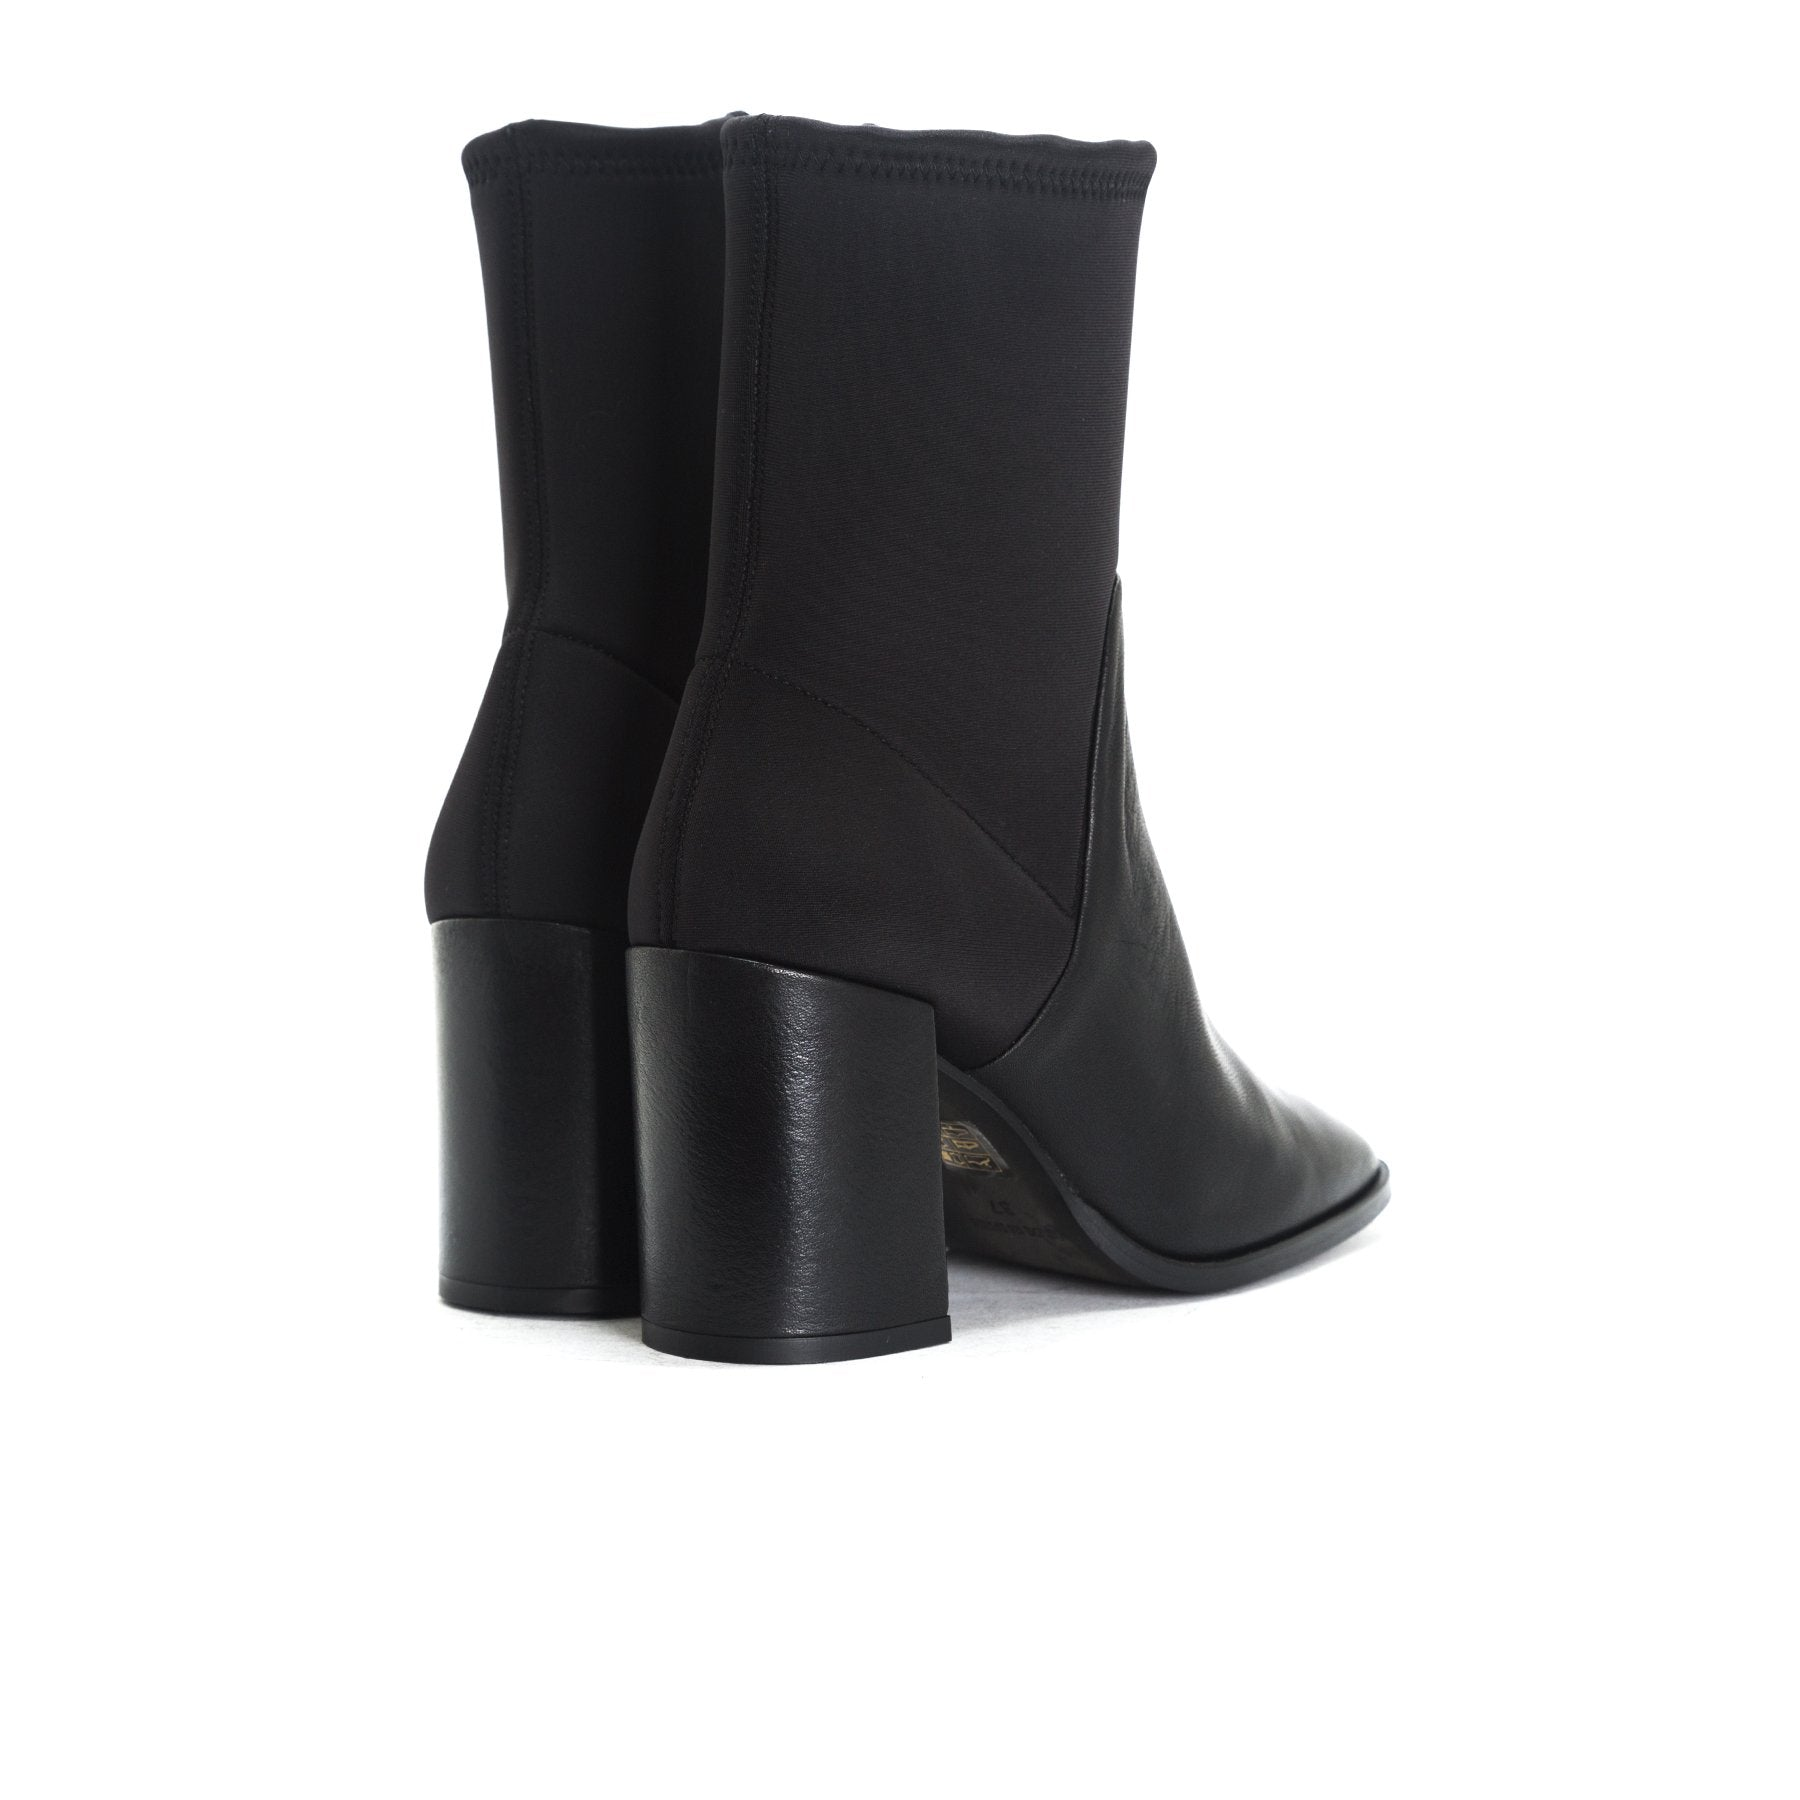 Zadar Black Leather/Neoprene Ankle Boots